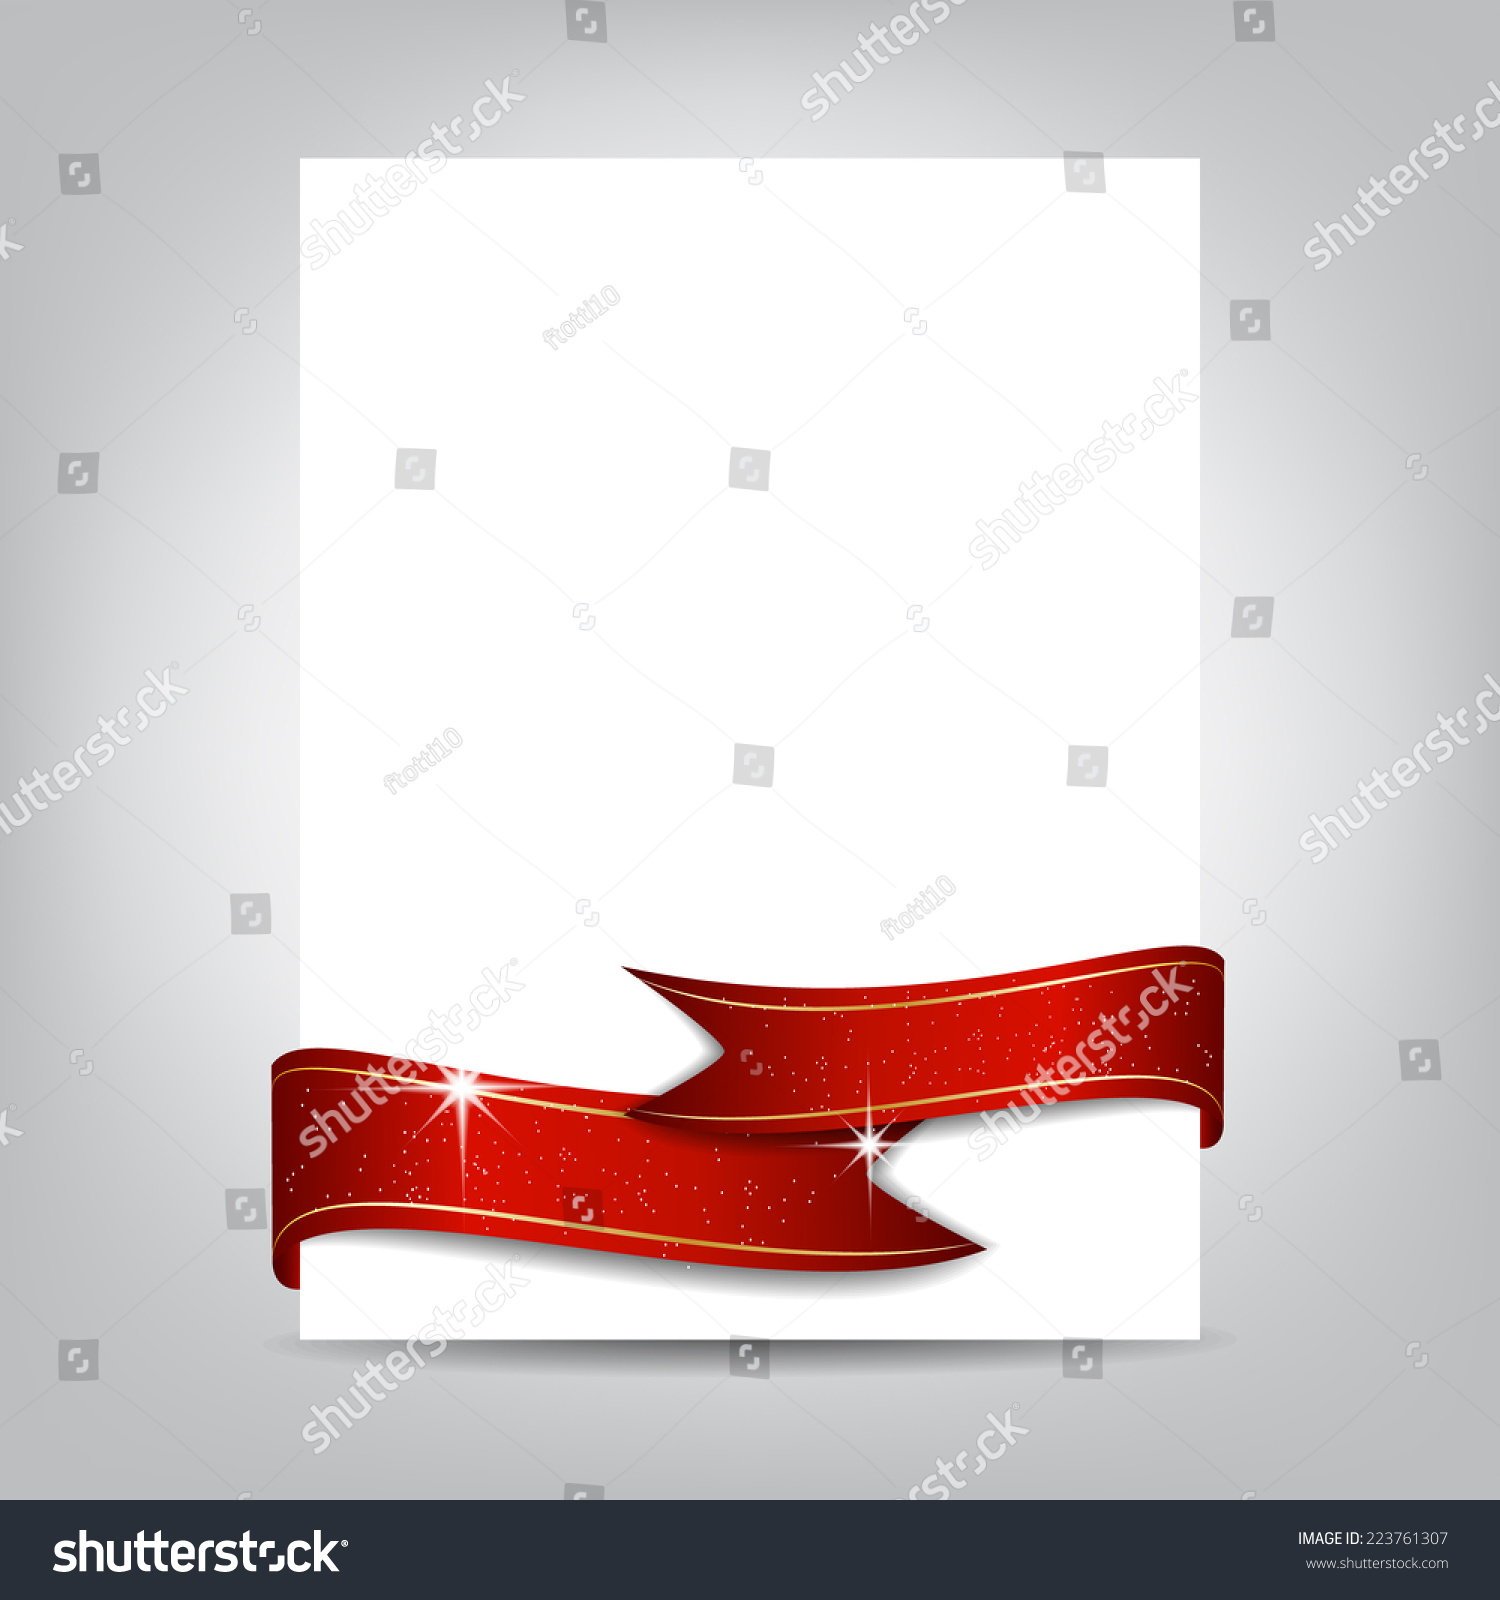 christmas flyer template paper banner red stock vector  christmas flyer template paper banner red ribbon cover design can be used